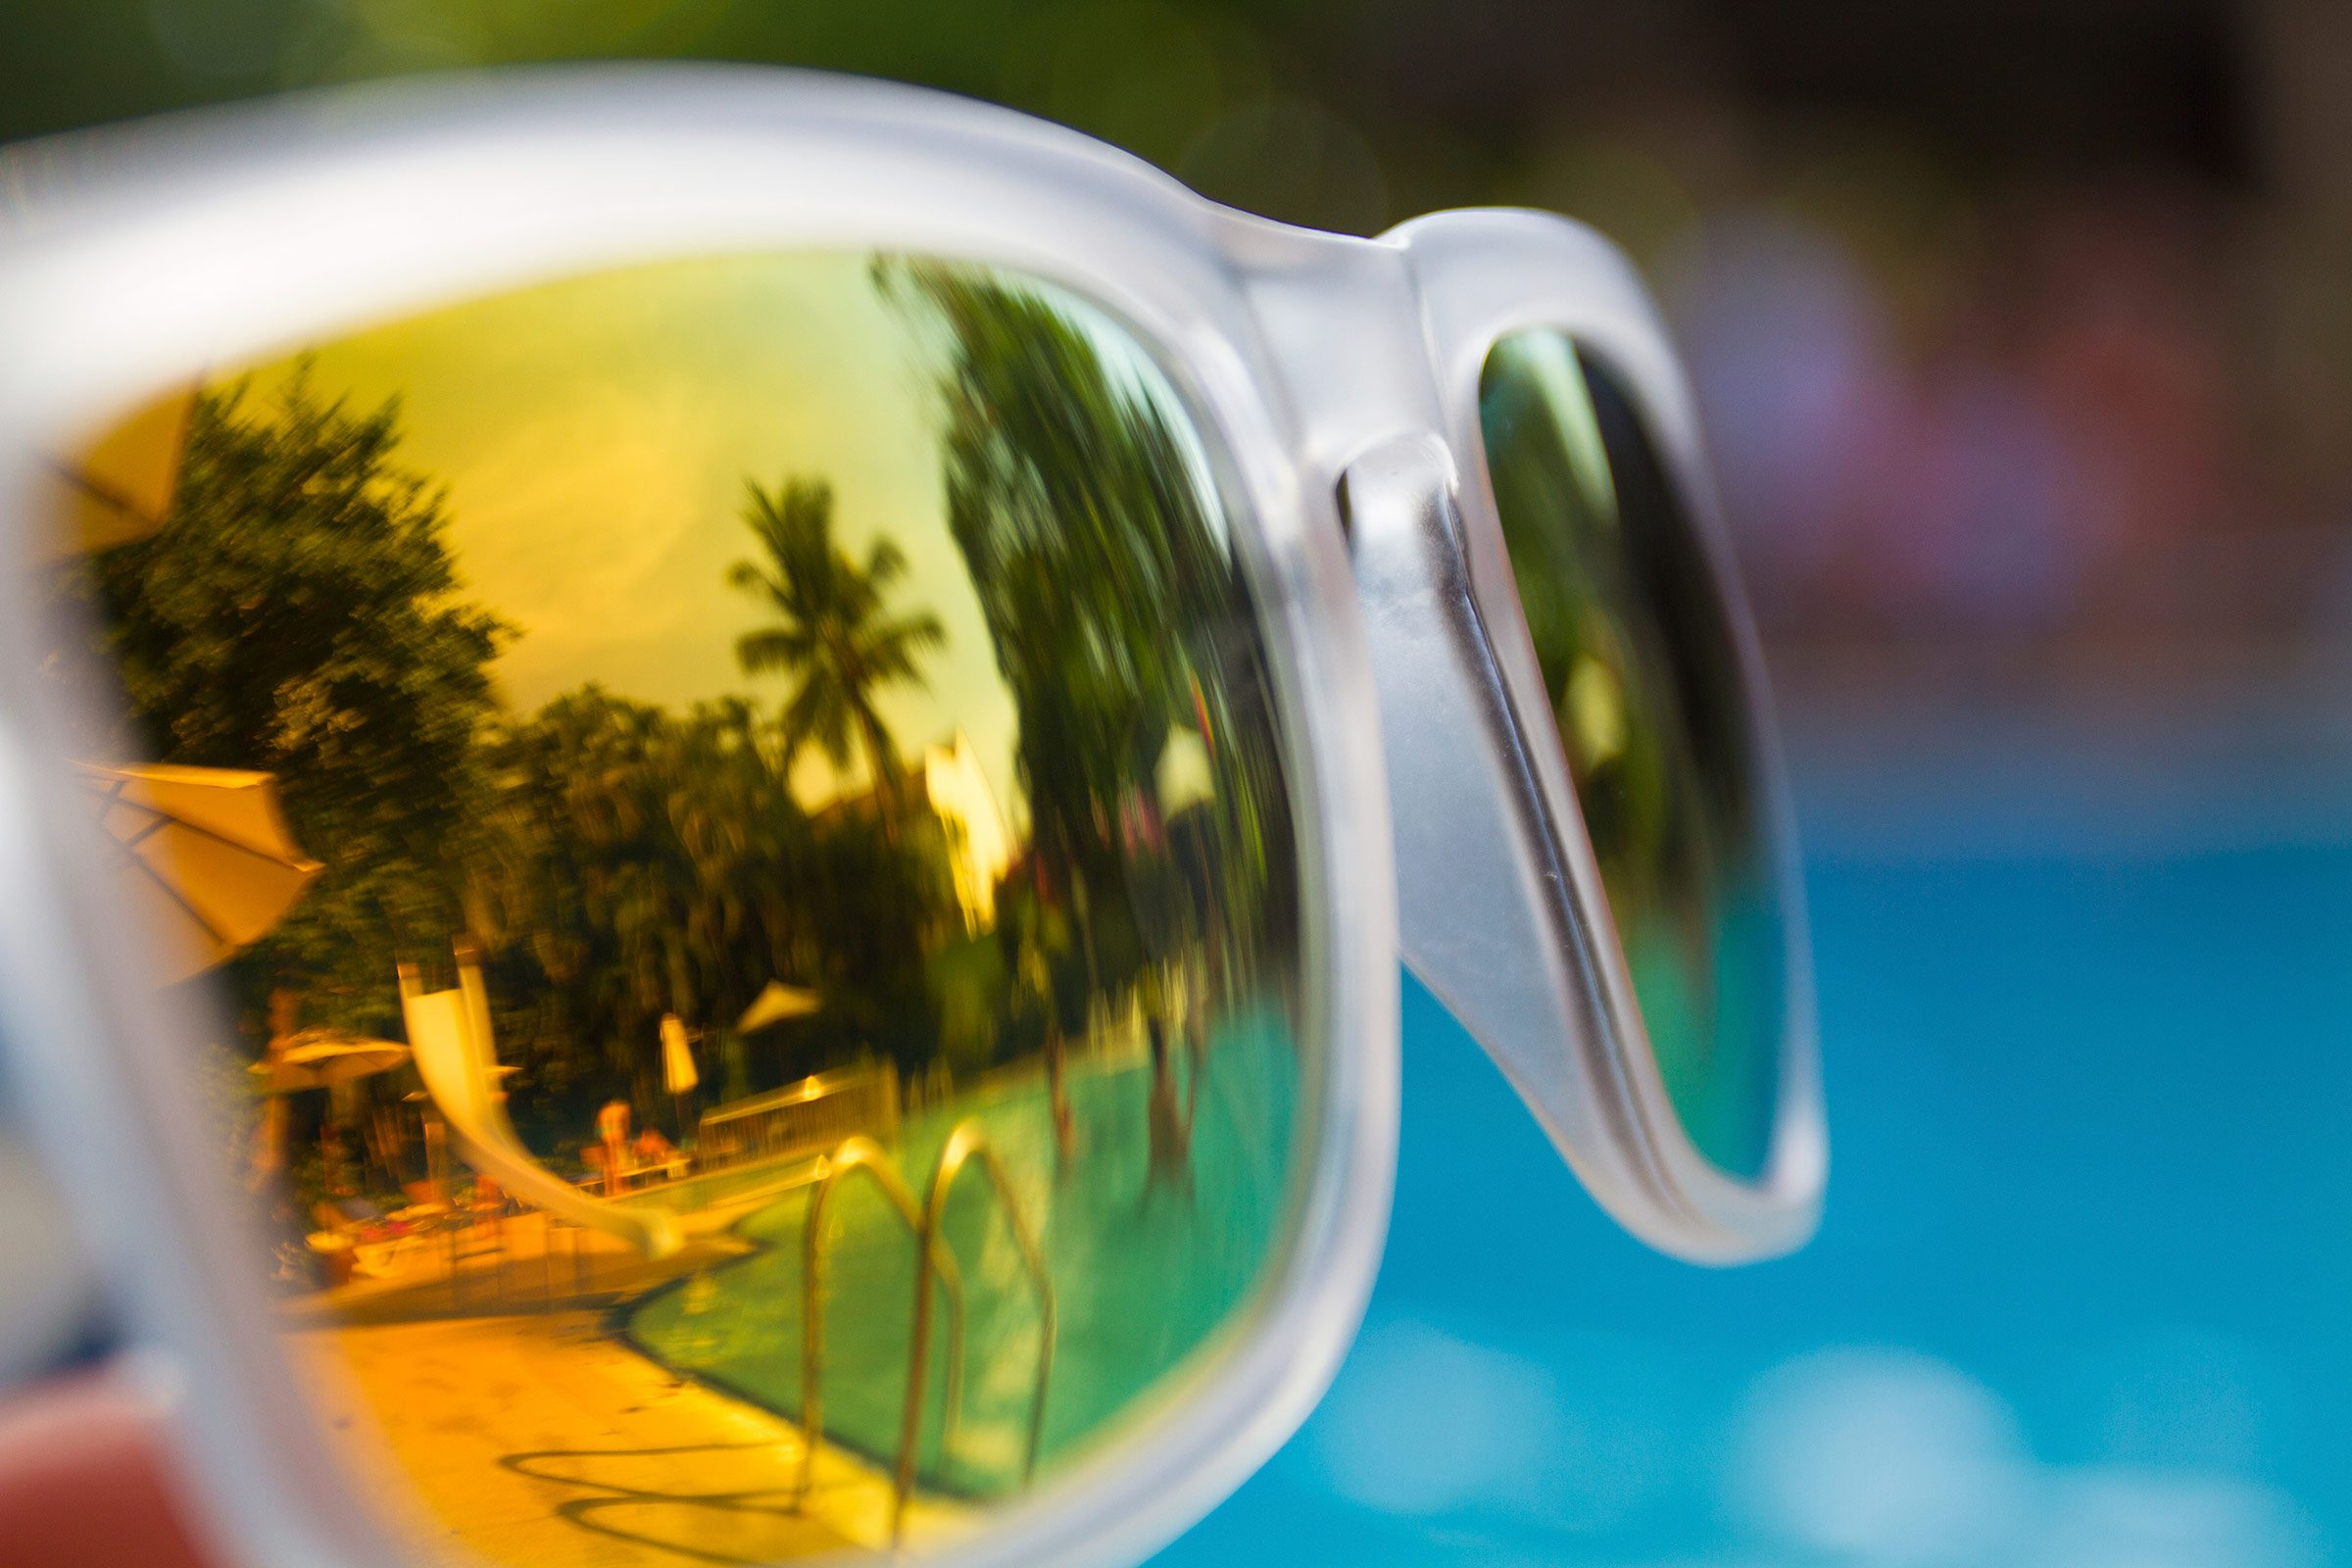 Polarized sunglasses are great at reducing glare,